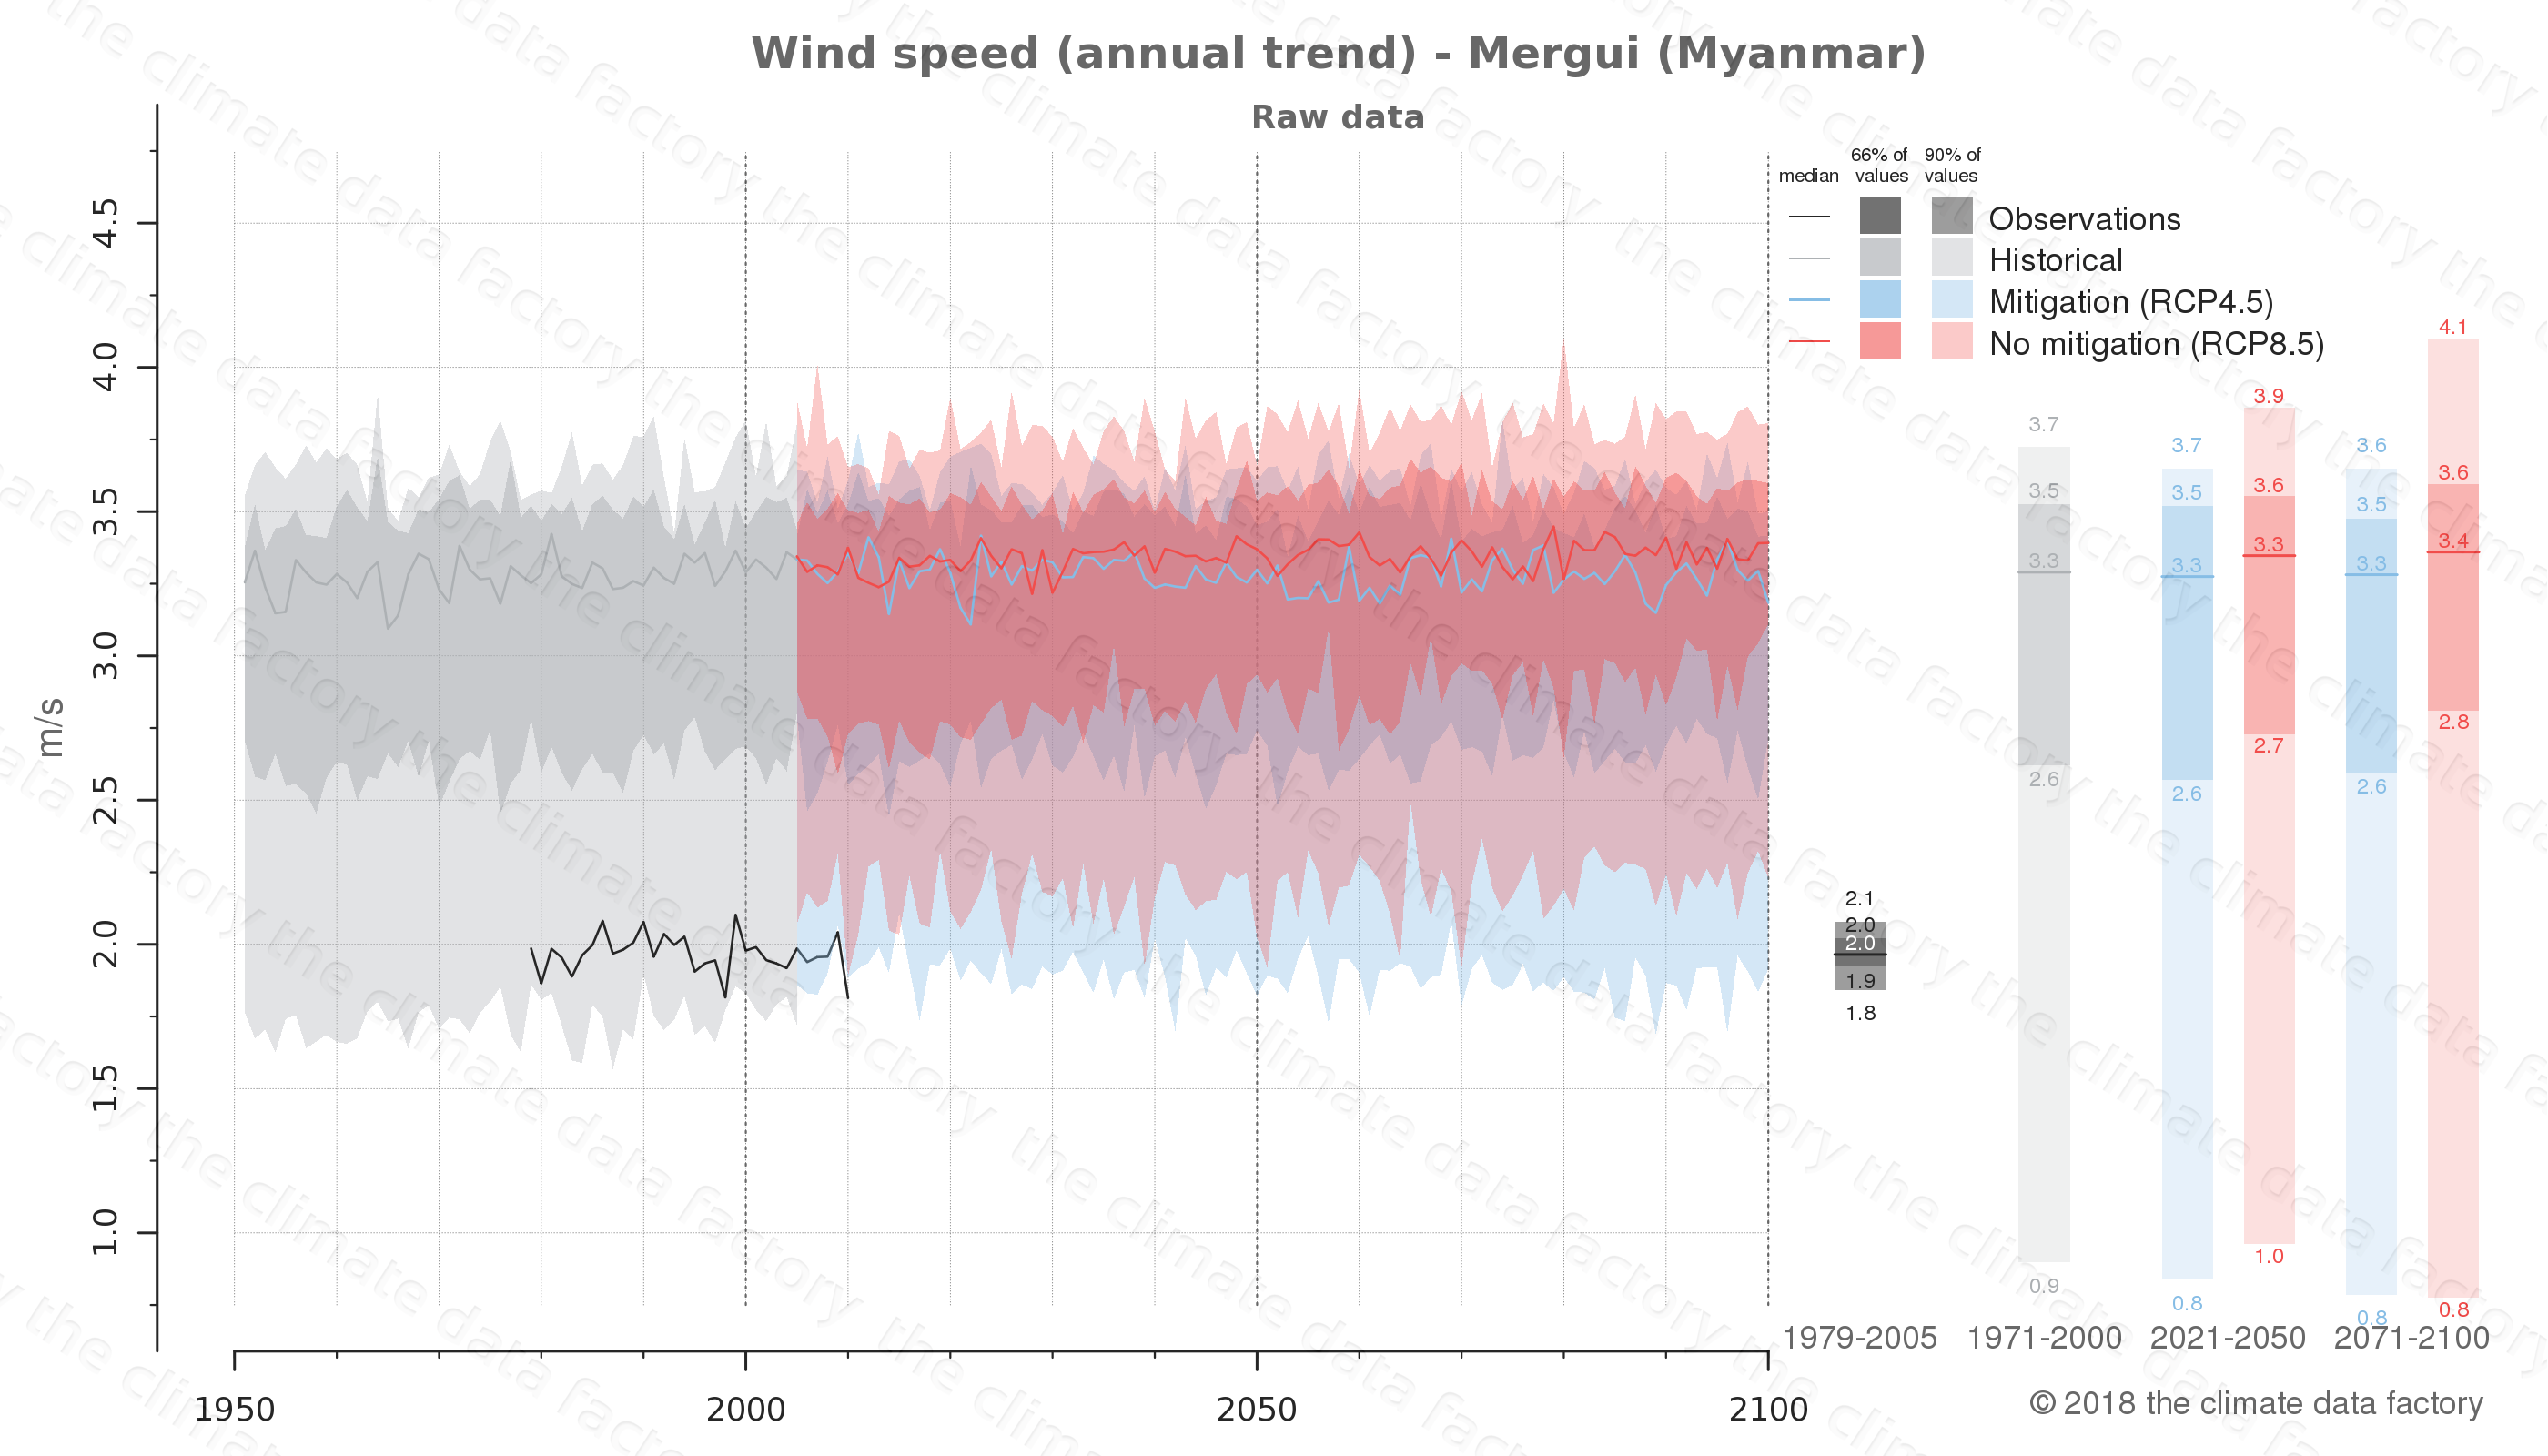 climate change data policy adaptation climate graph city data wind-speed mergui myanmar